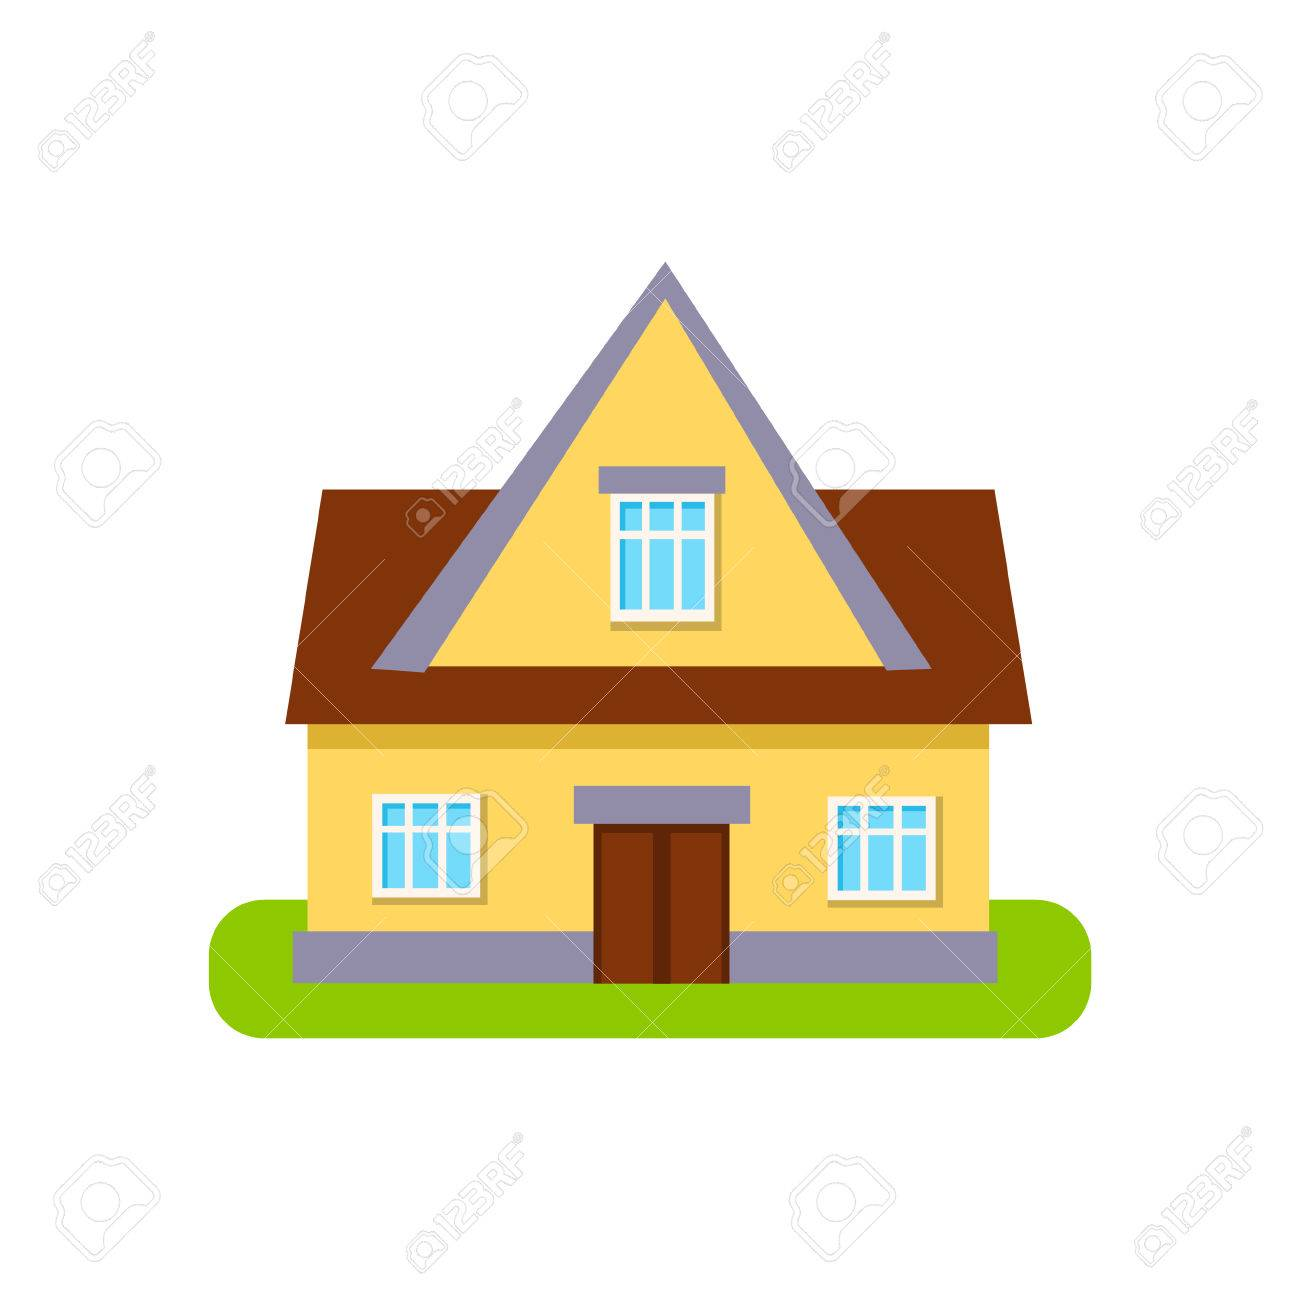 Classic Cottage Suburban House Exterior Design Primitive Geometric Flat  Vector Drawing Isolated On White Background Stock